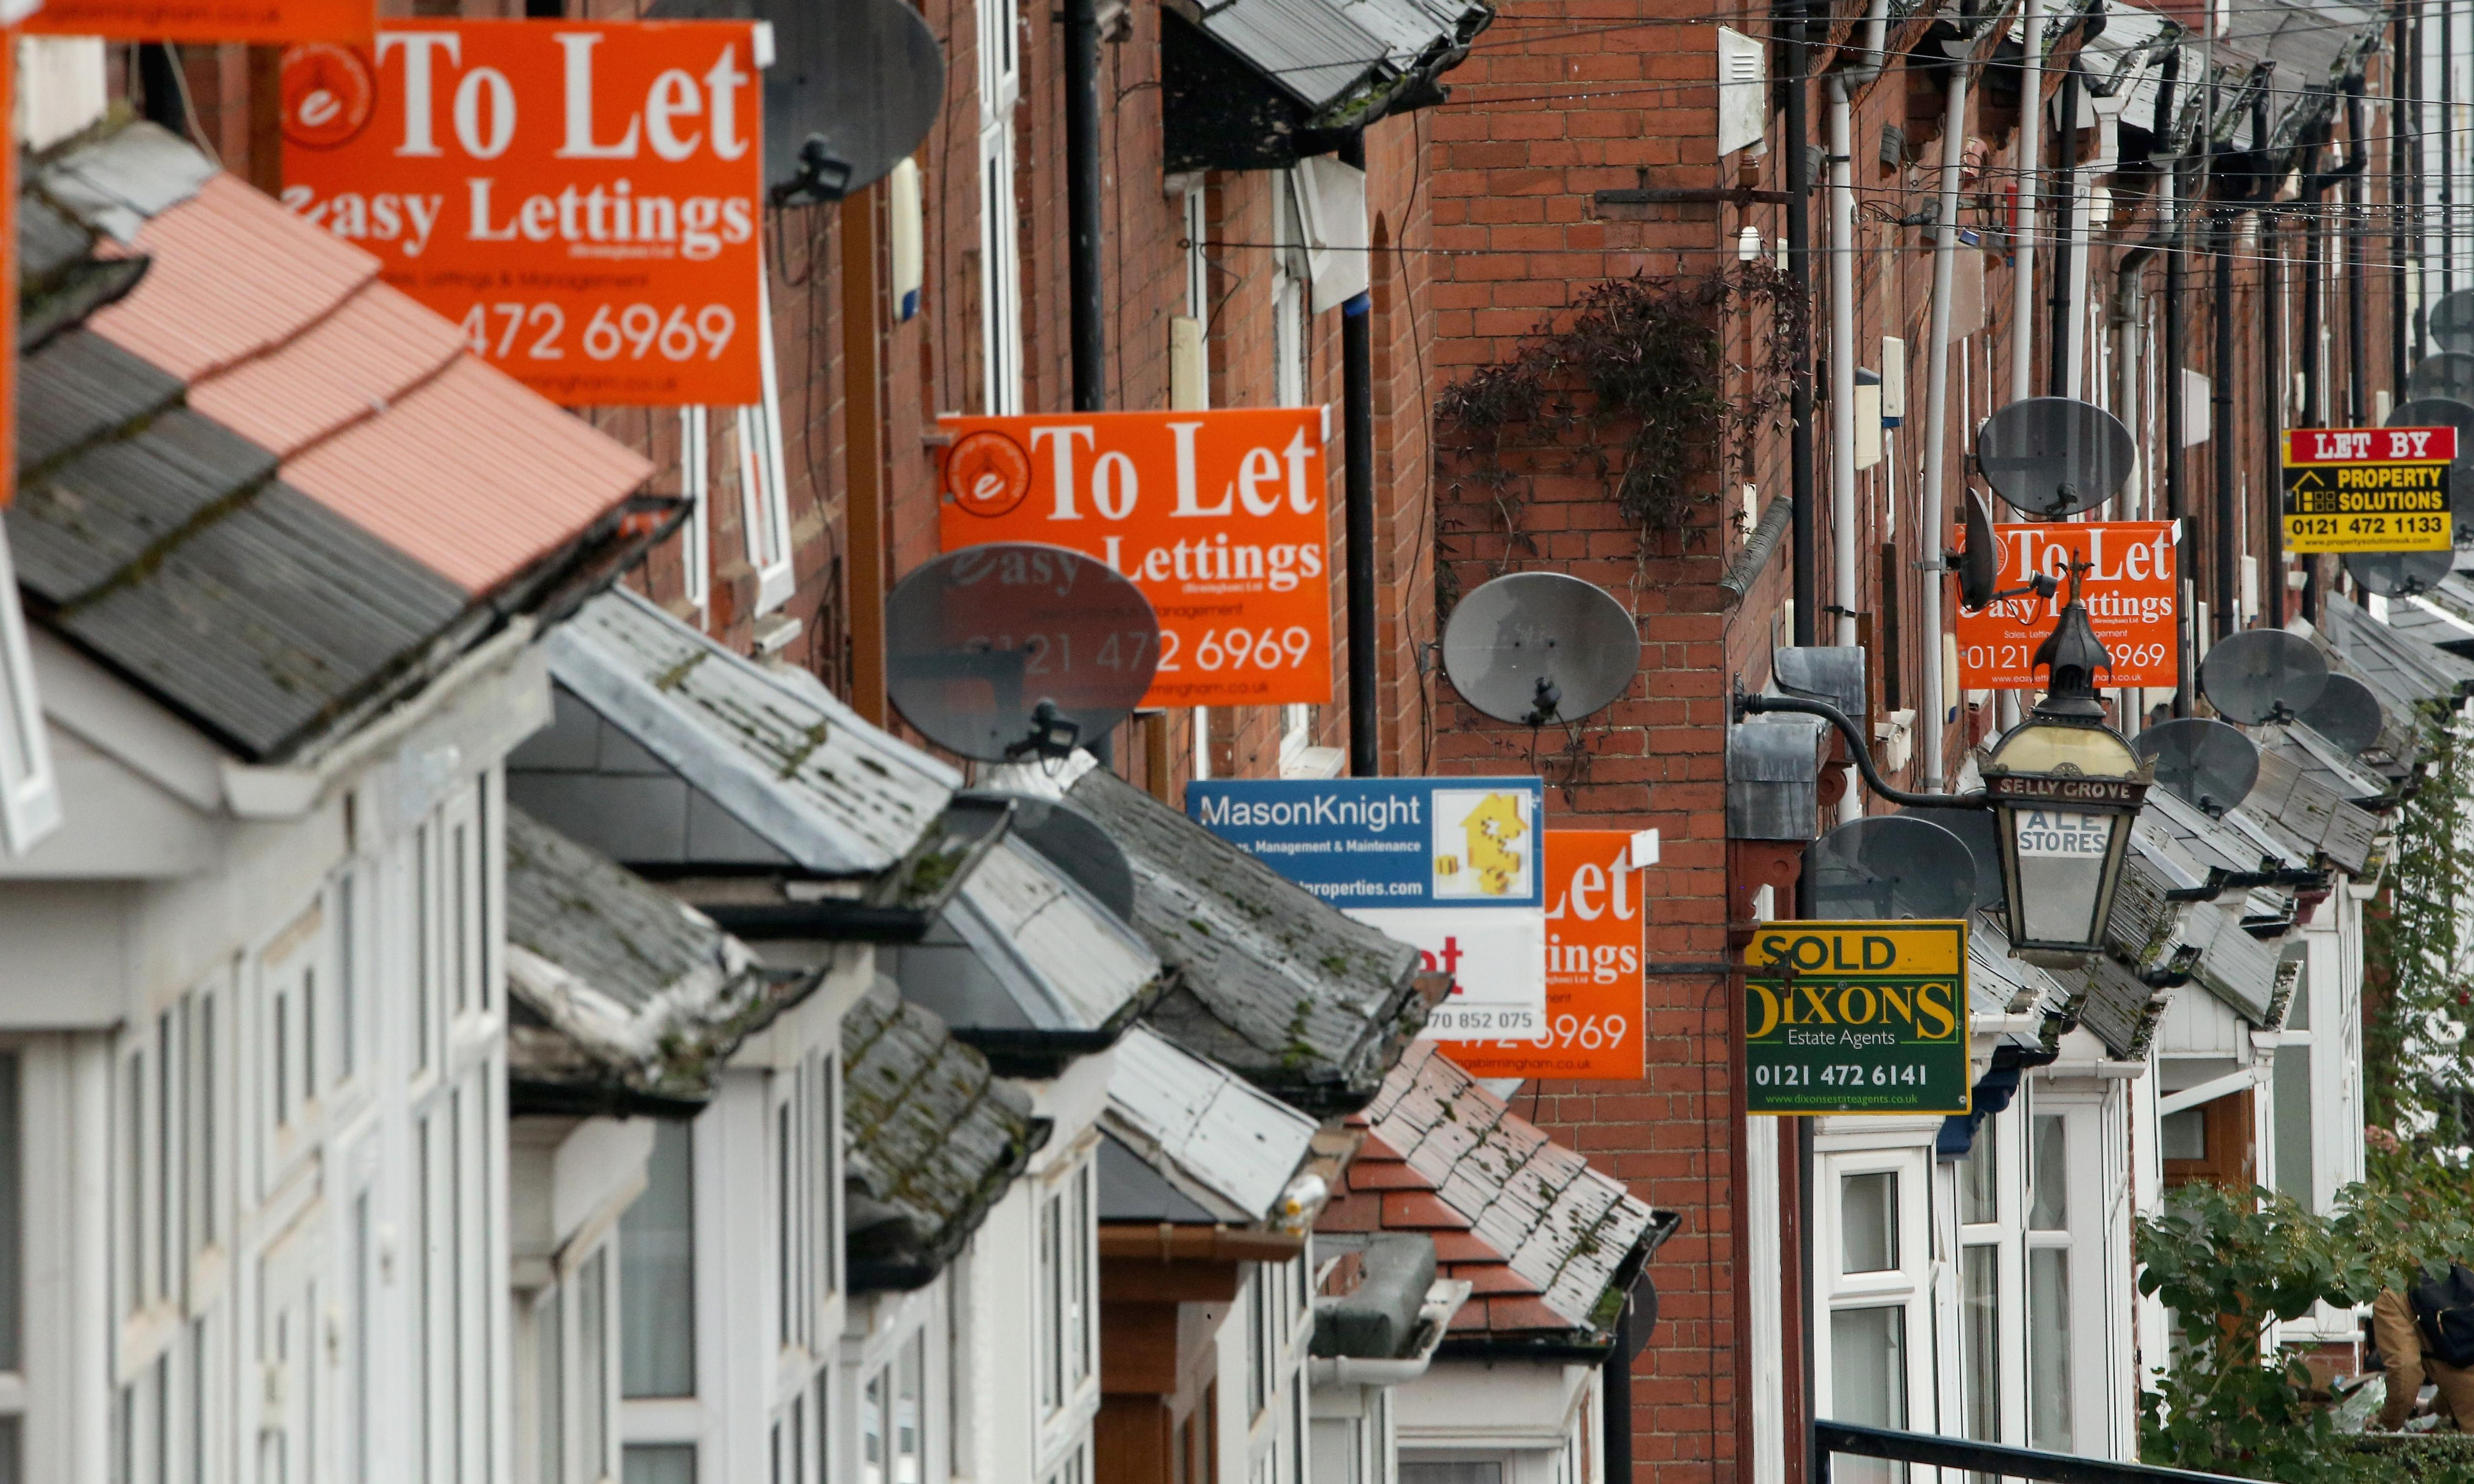 Evictions cost private renters in England £70m a year